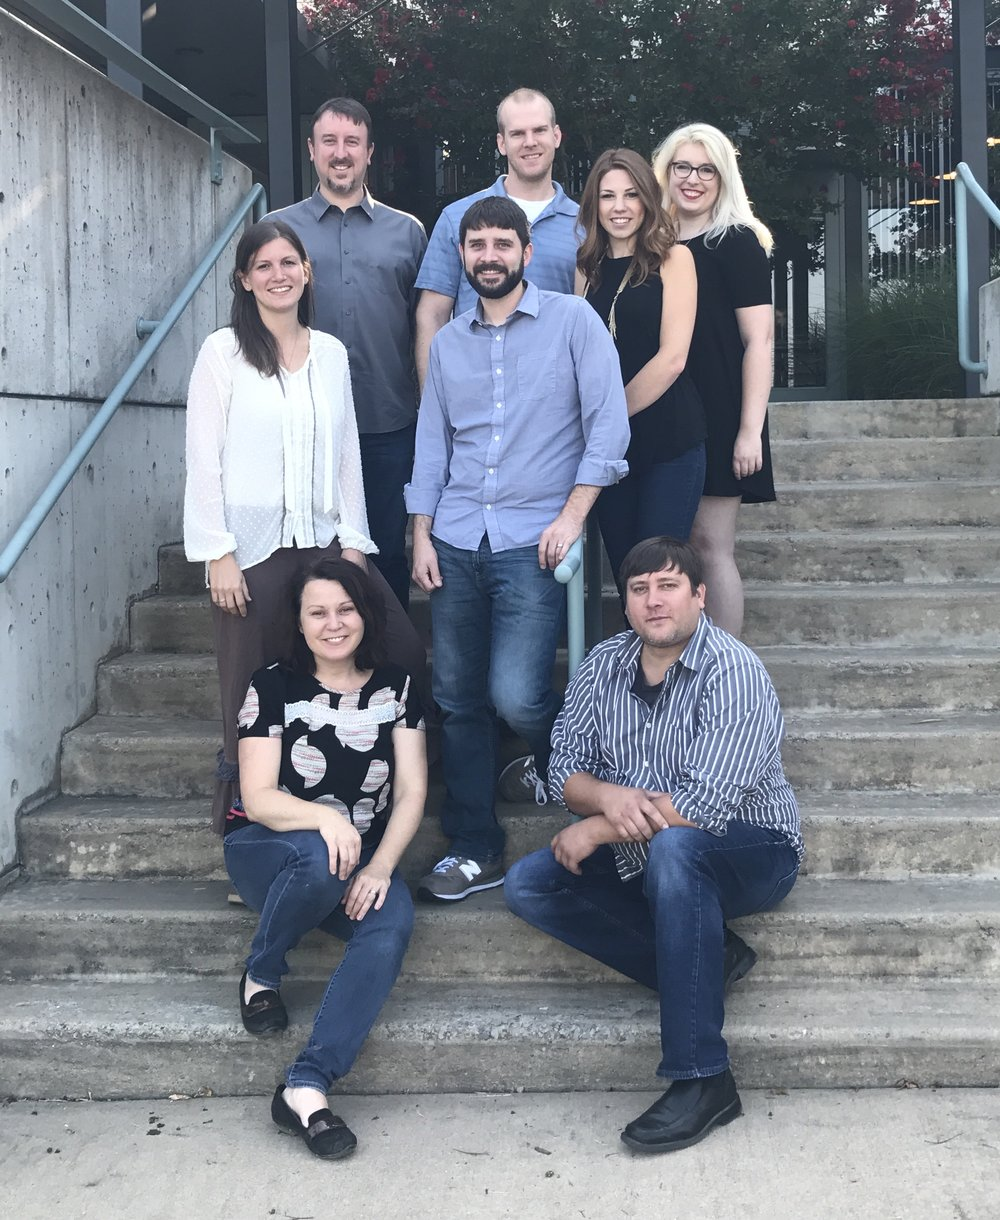 The deMx team, pictured from top left to bottom right: Tim Maddox, Seth Spradlin, Corinne Burns, Julia Trupp, Sarah McElroy, Ben Cruce, Julie Chambers, Gary Moore